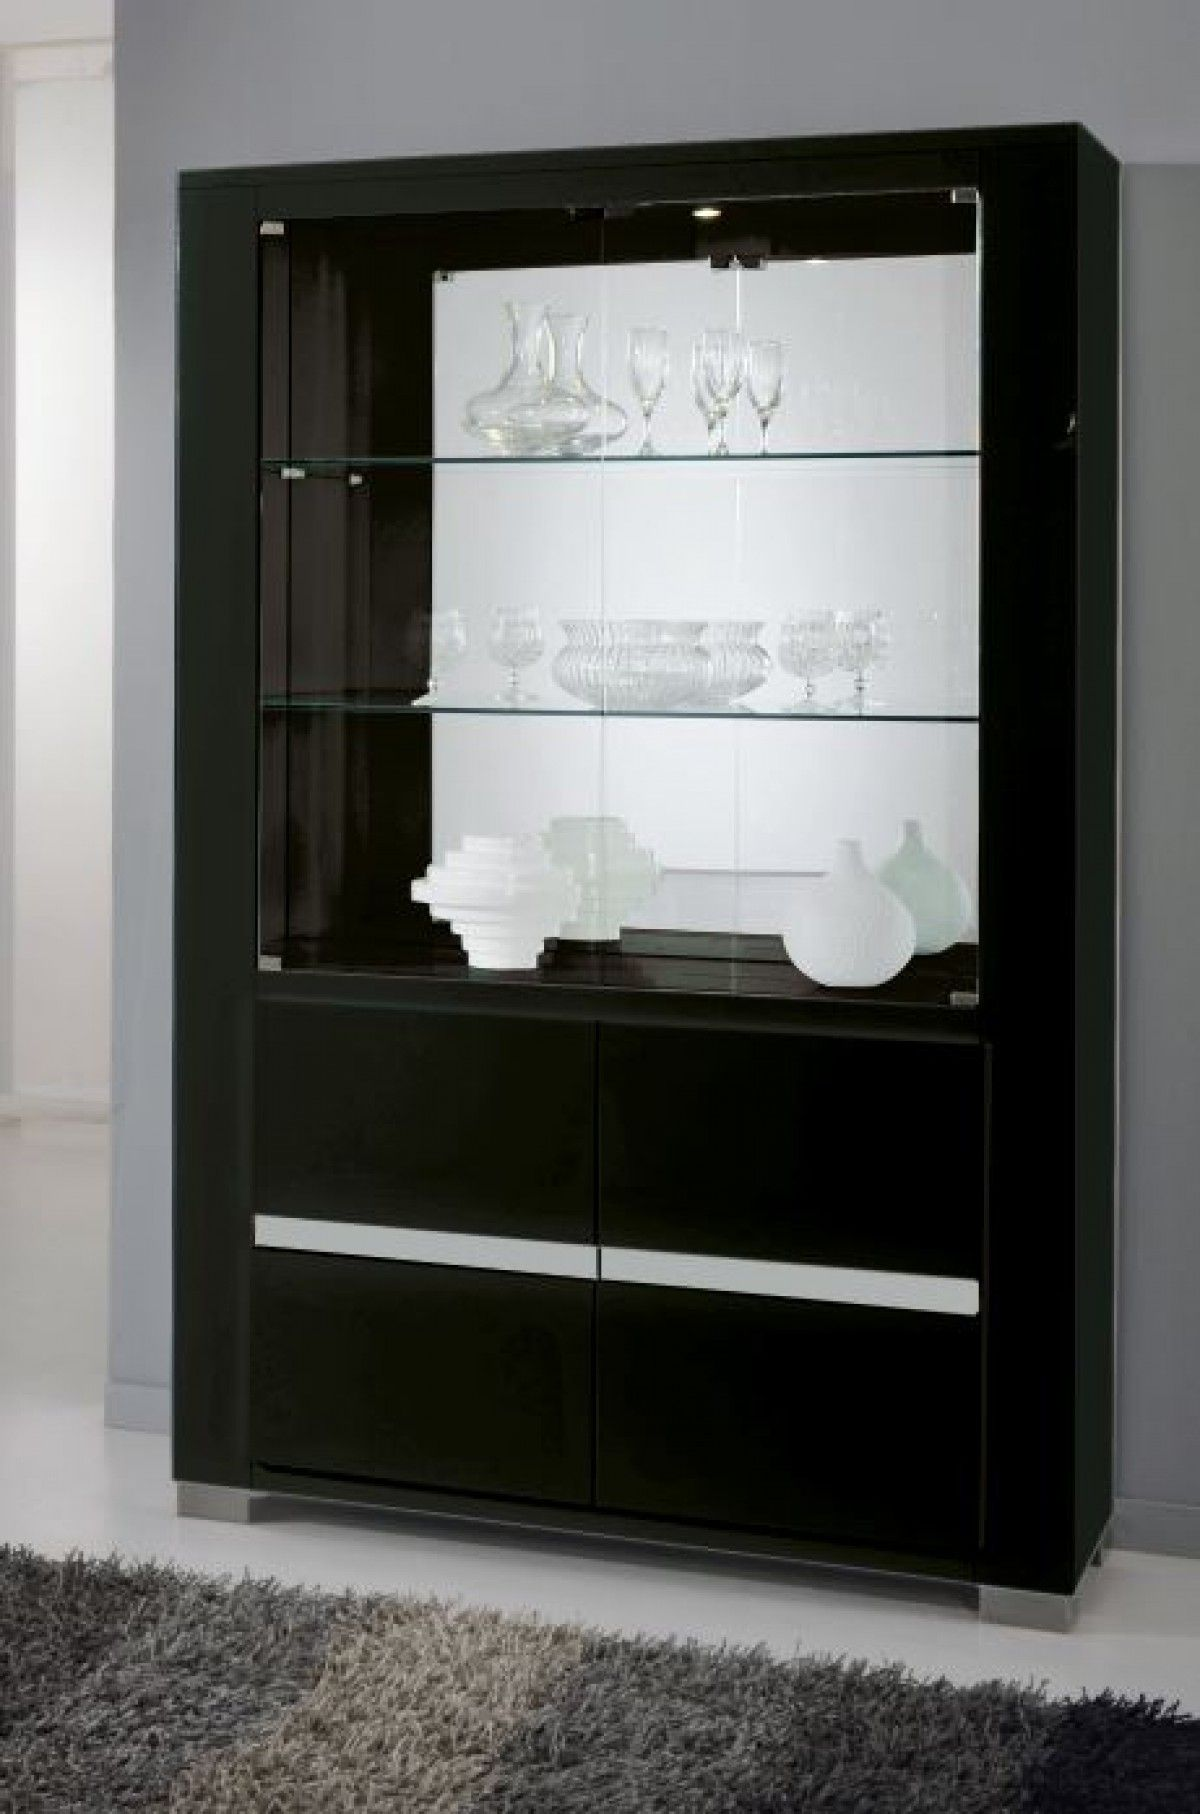 Elitechinablk  Dining Room  Pinterest  Dining Room Modern Classy Modern Dining Room Display Cabinets Design Ideas